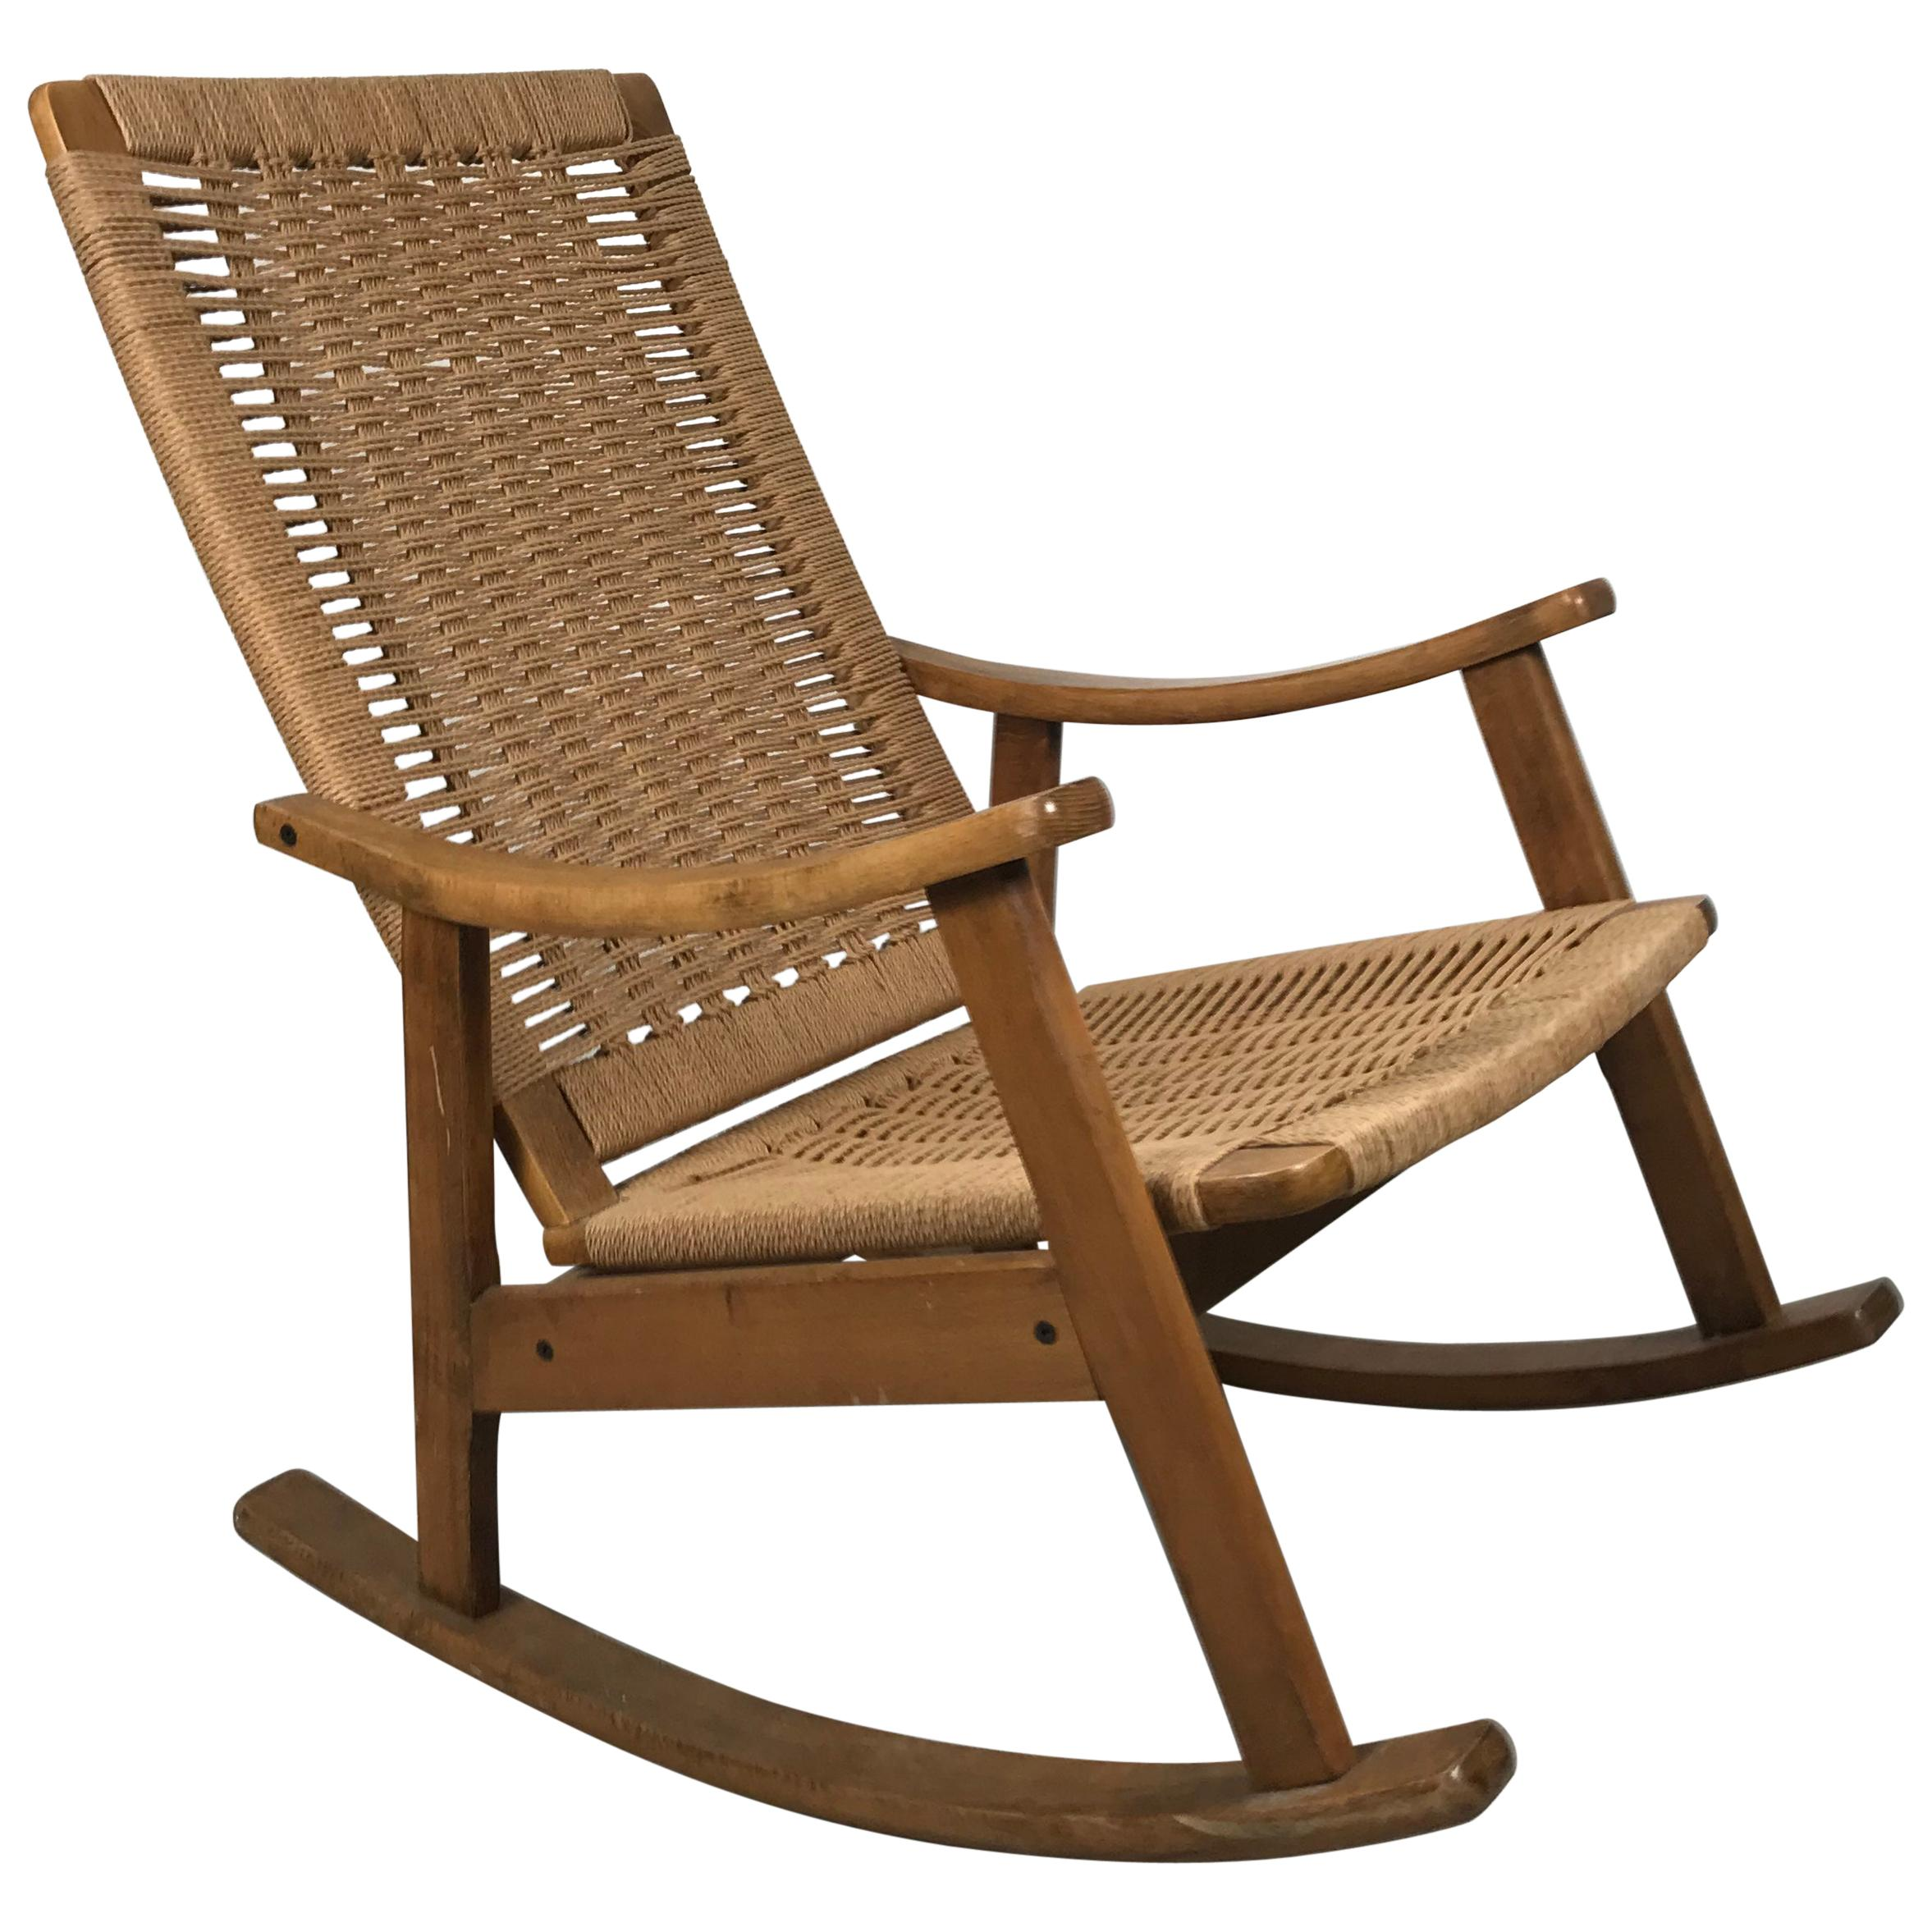 Stupendous Antique And Vintage Rocking Chairs 1 009 For Sale At 1Stdibs Ibusinesslaw Wood Chair Design Ideas Ibusinesslaworg